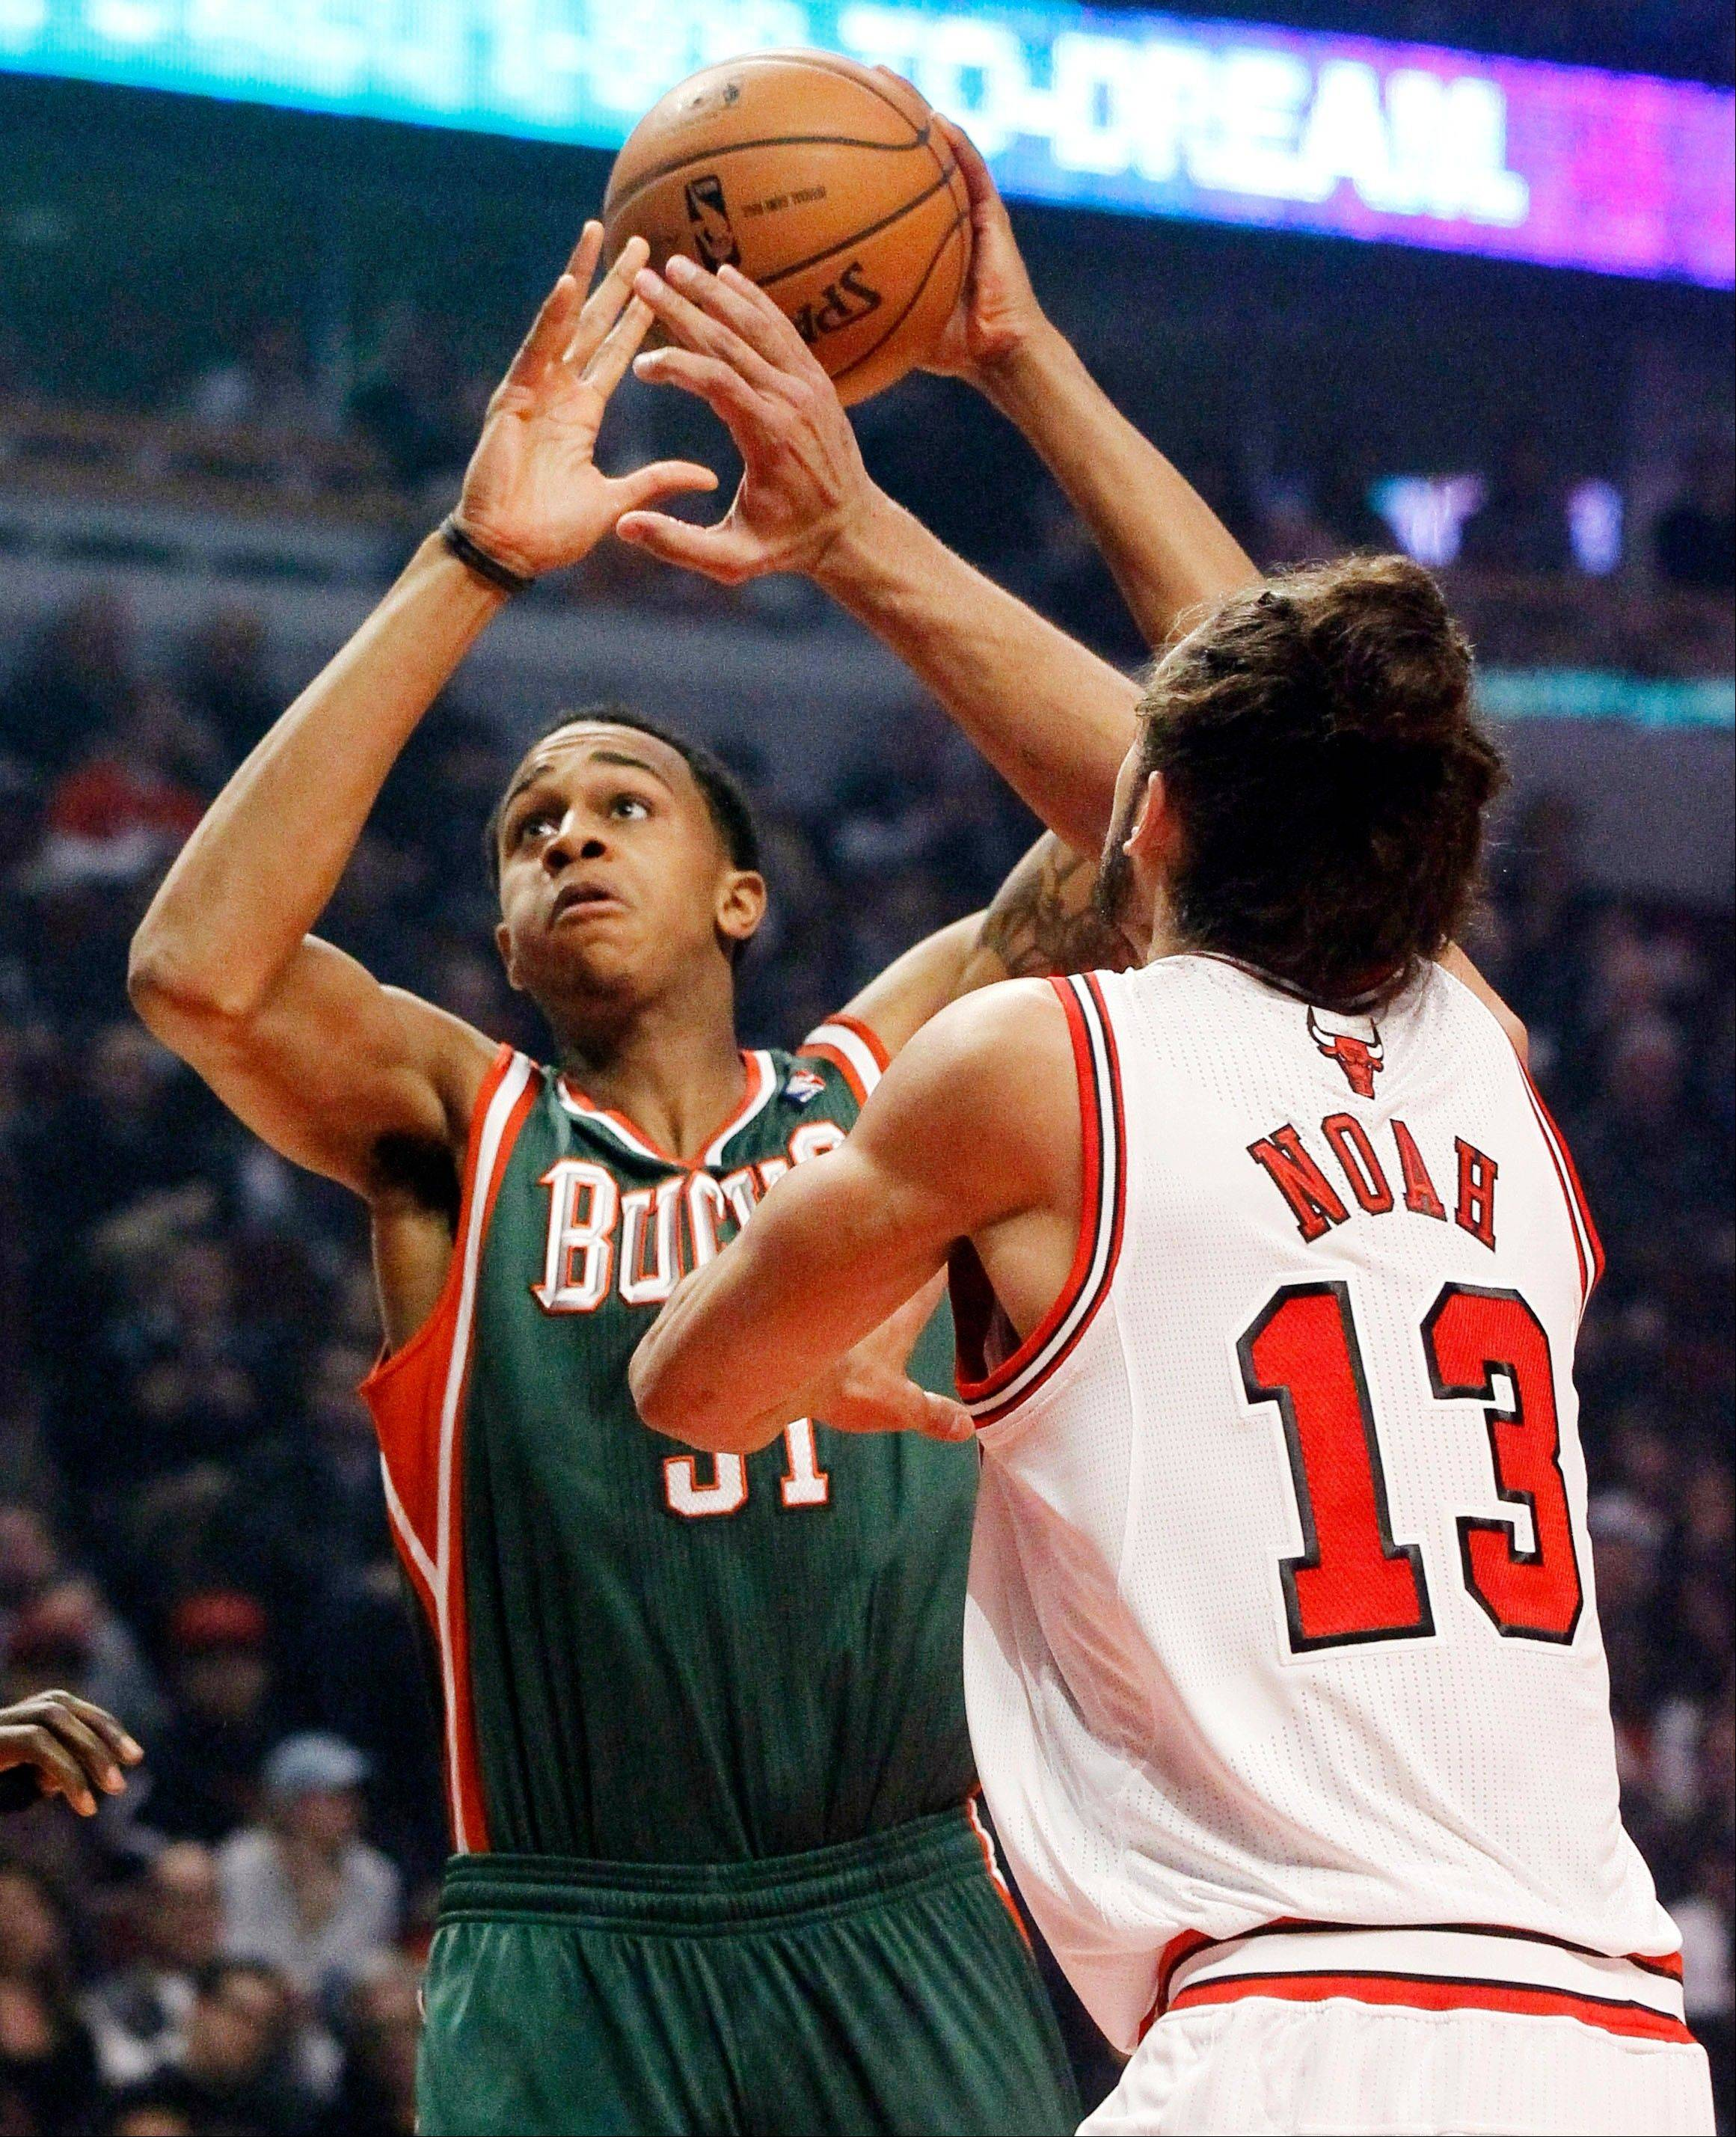 Milwaukee Bucks forward John Henson (31) shoots over Chicago Bulls center Joakim Noah (13) during the first half of an NBA basketball game, Monday, Nov. 26, 2012, in Chicago.